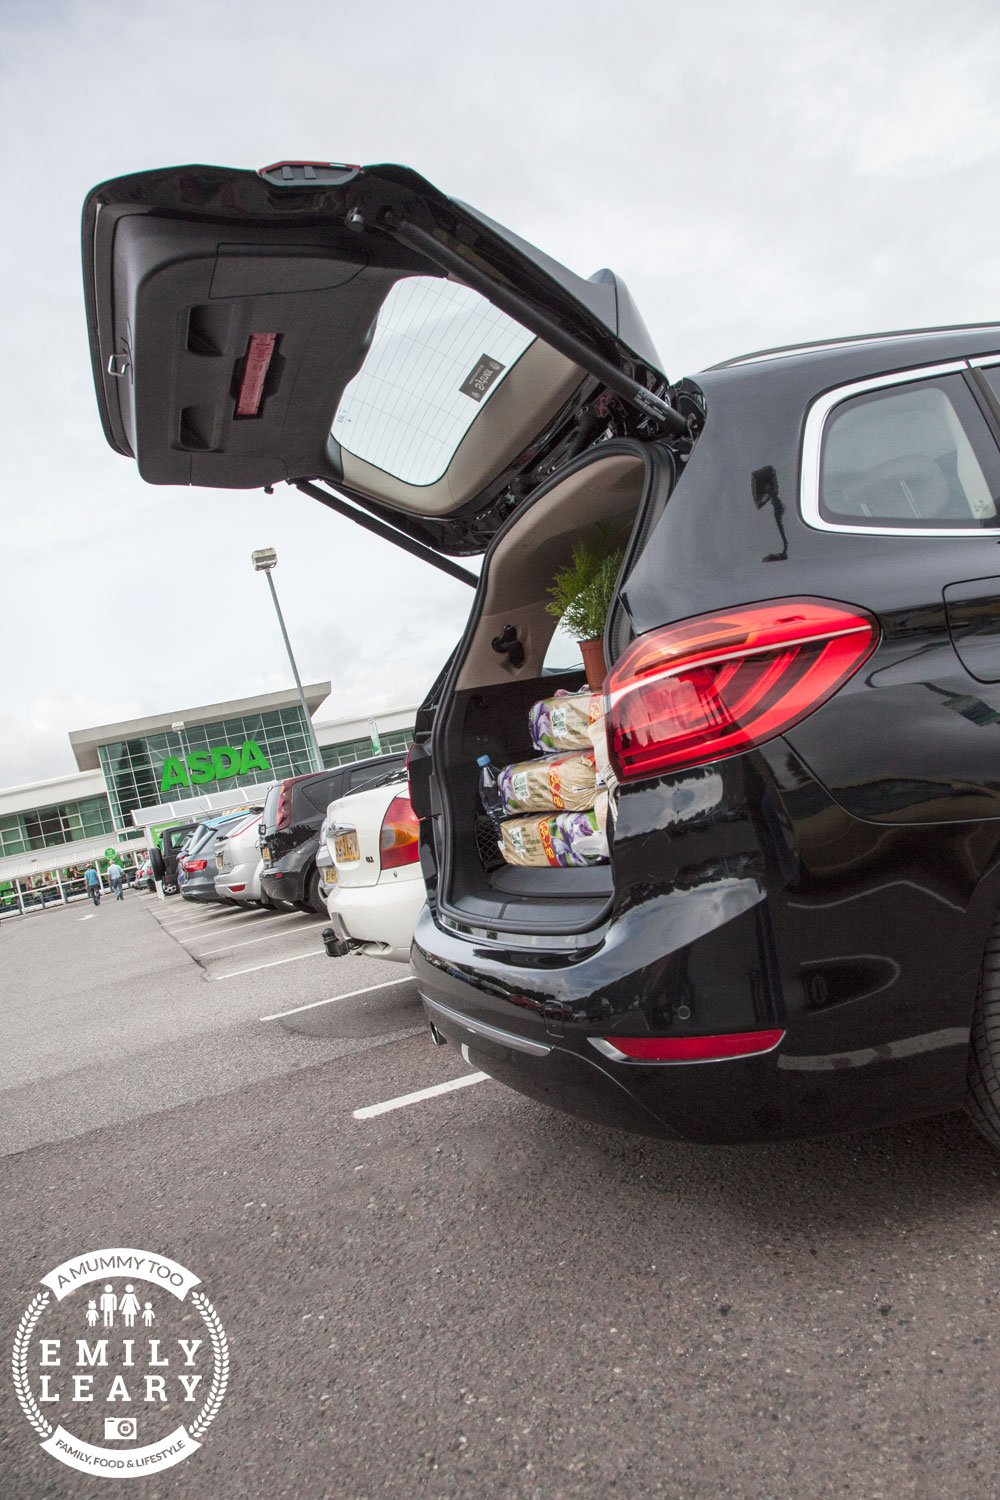 BMW 2 Series Gran Tourer at supermarket